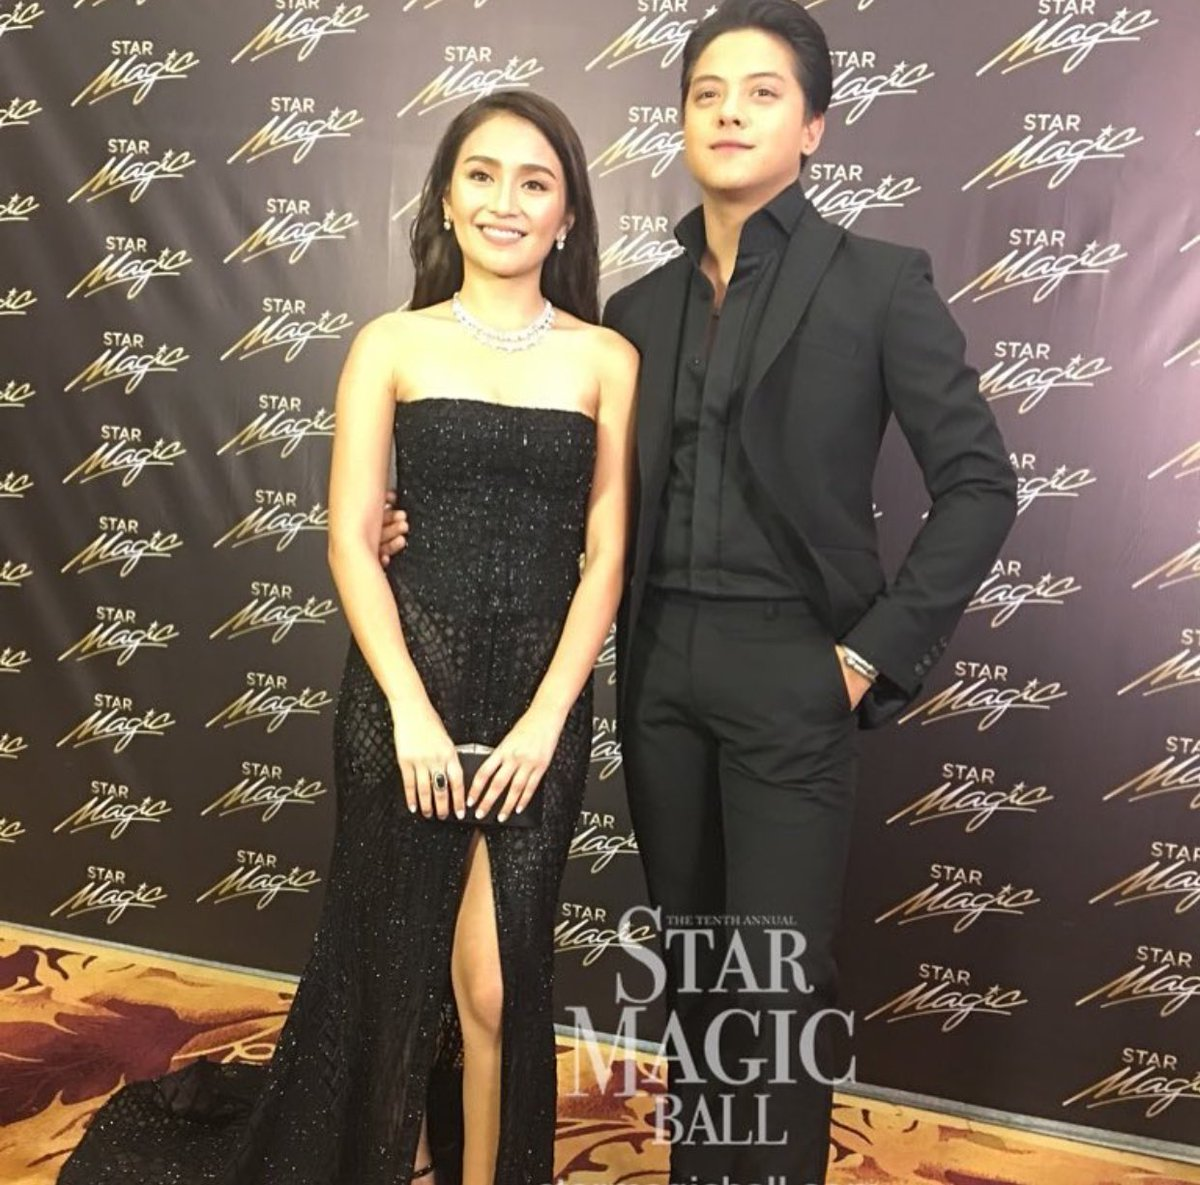 The King and Queen of Hearts #KathNiel #KathNielStarMagicBall2016 at the #StarMagicBall2016 https://t.co/vweYg6cy3Y